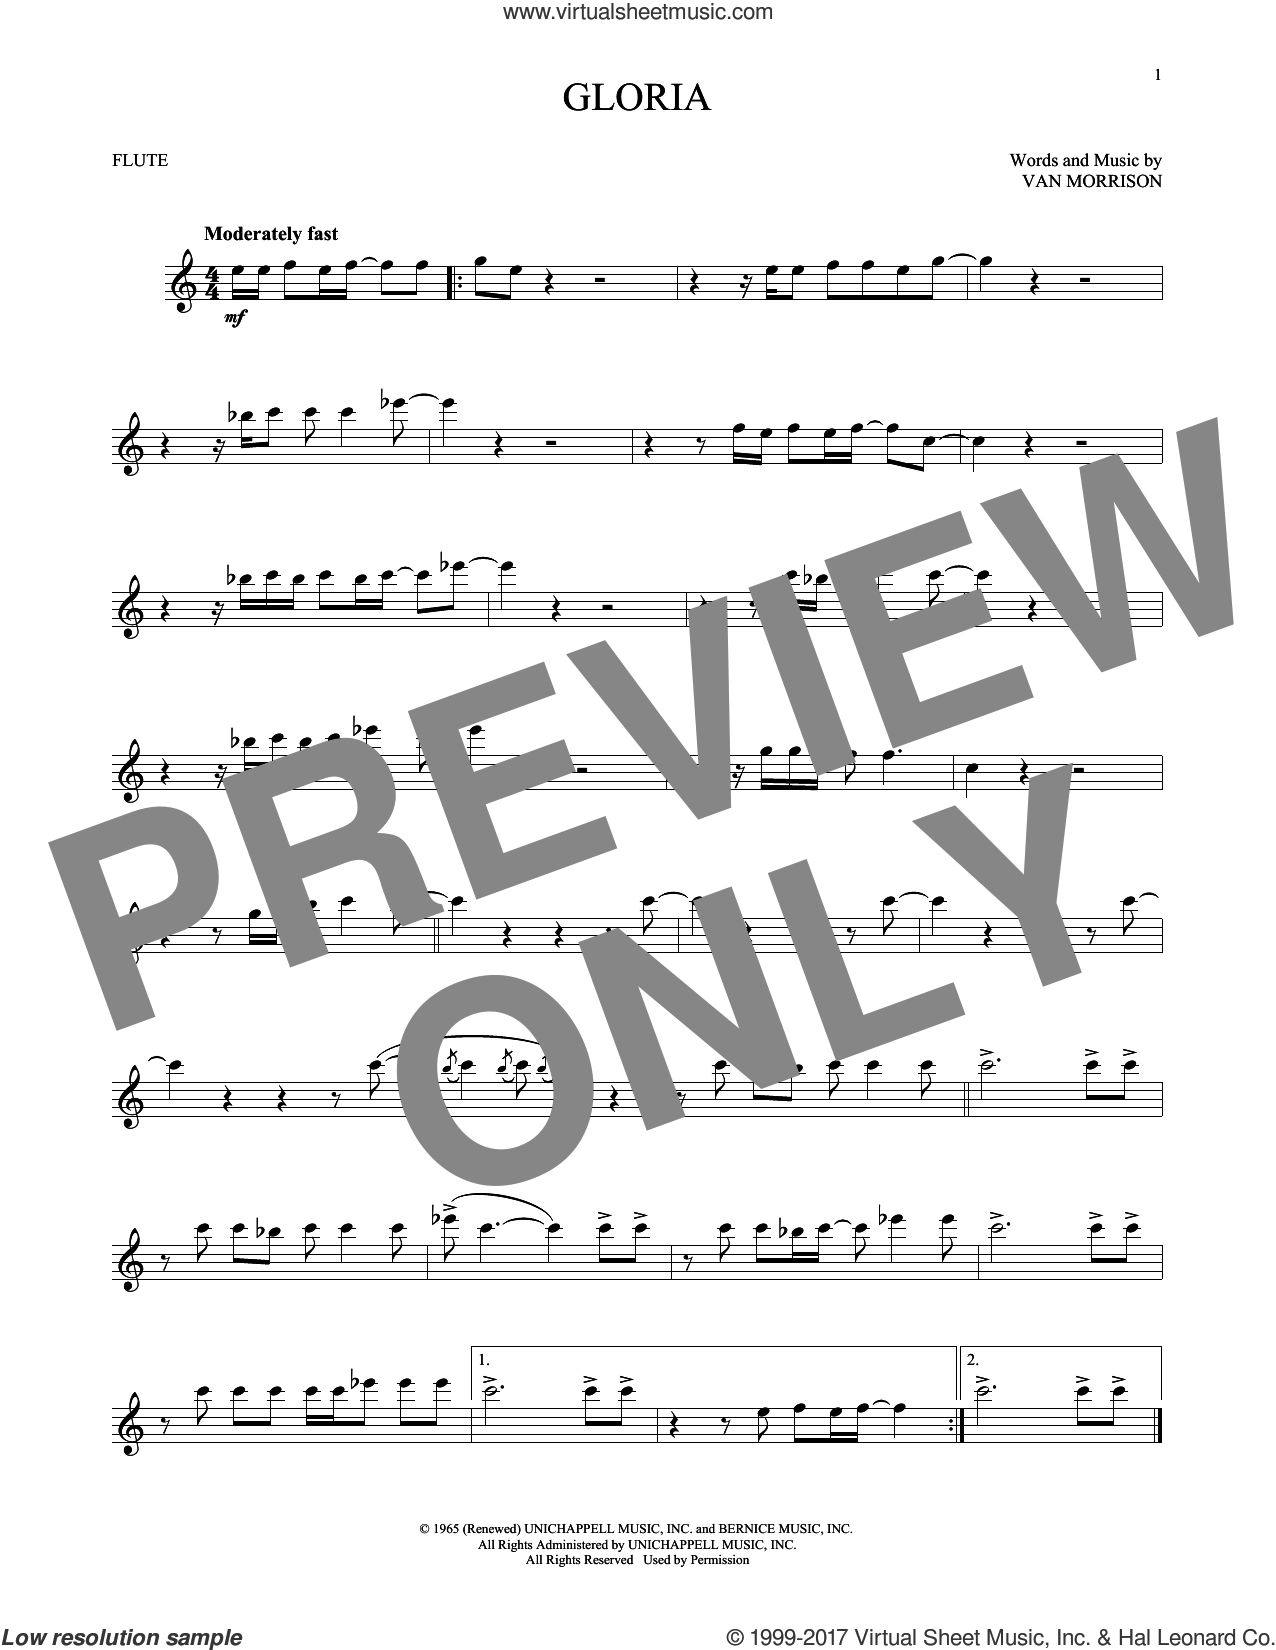 Gloria sheet music for flute solo by Van Morrison, intermediate skill level